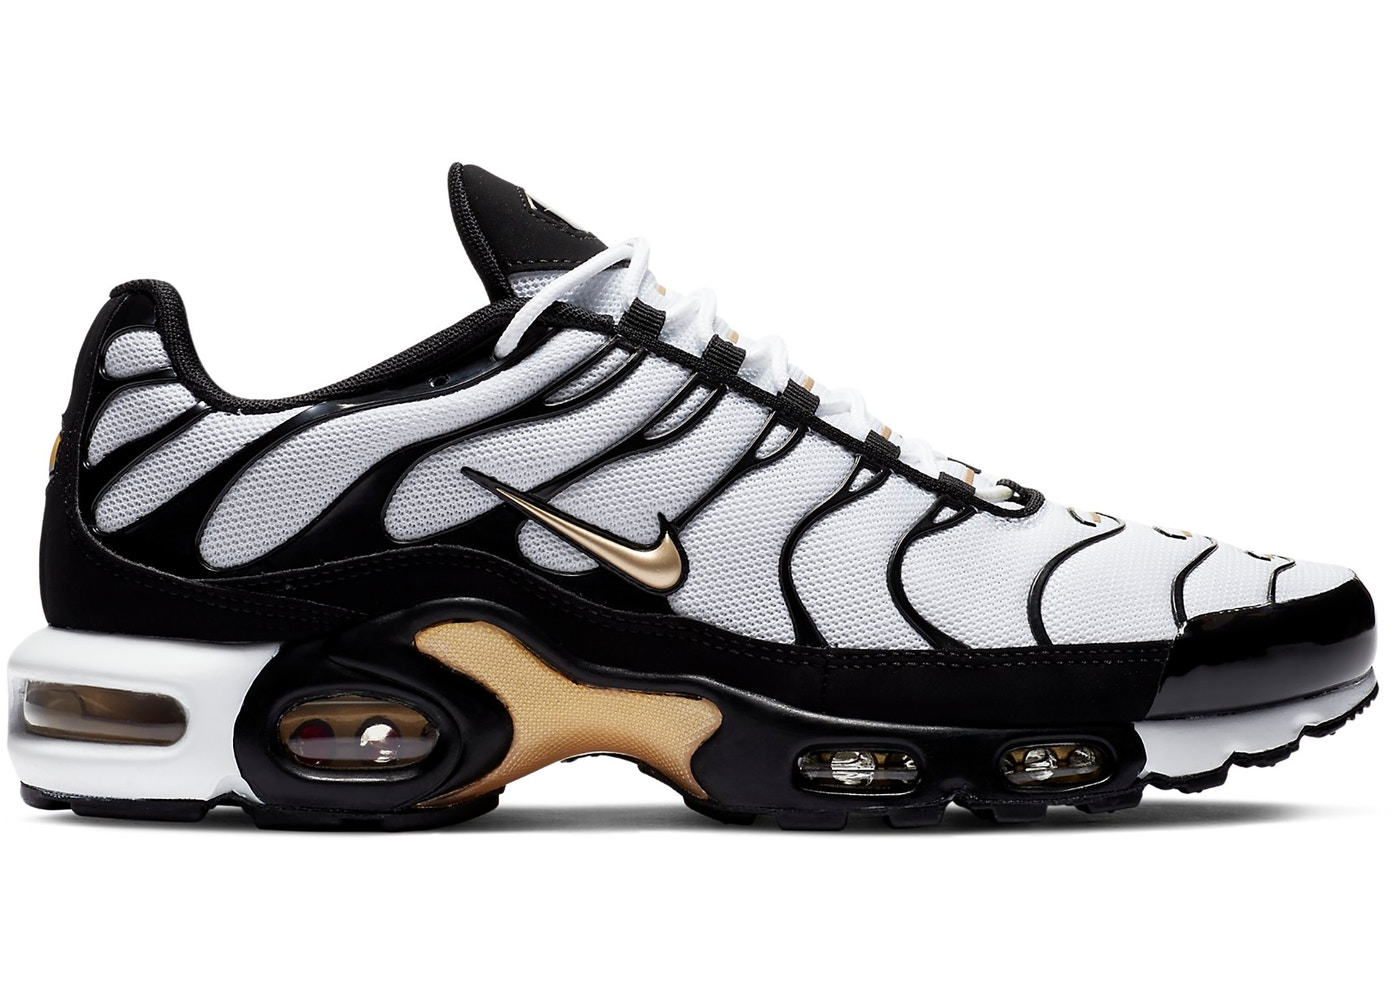 Nike Air Max Plus White Black Metallic Gold